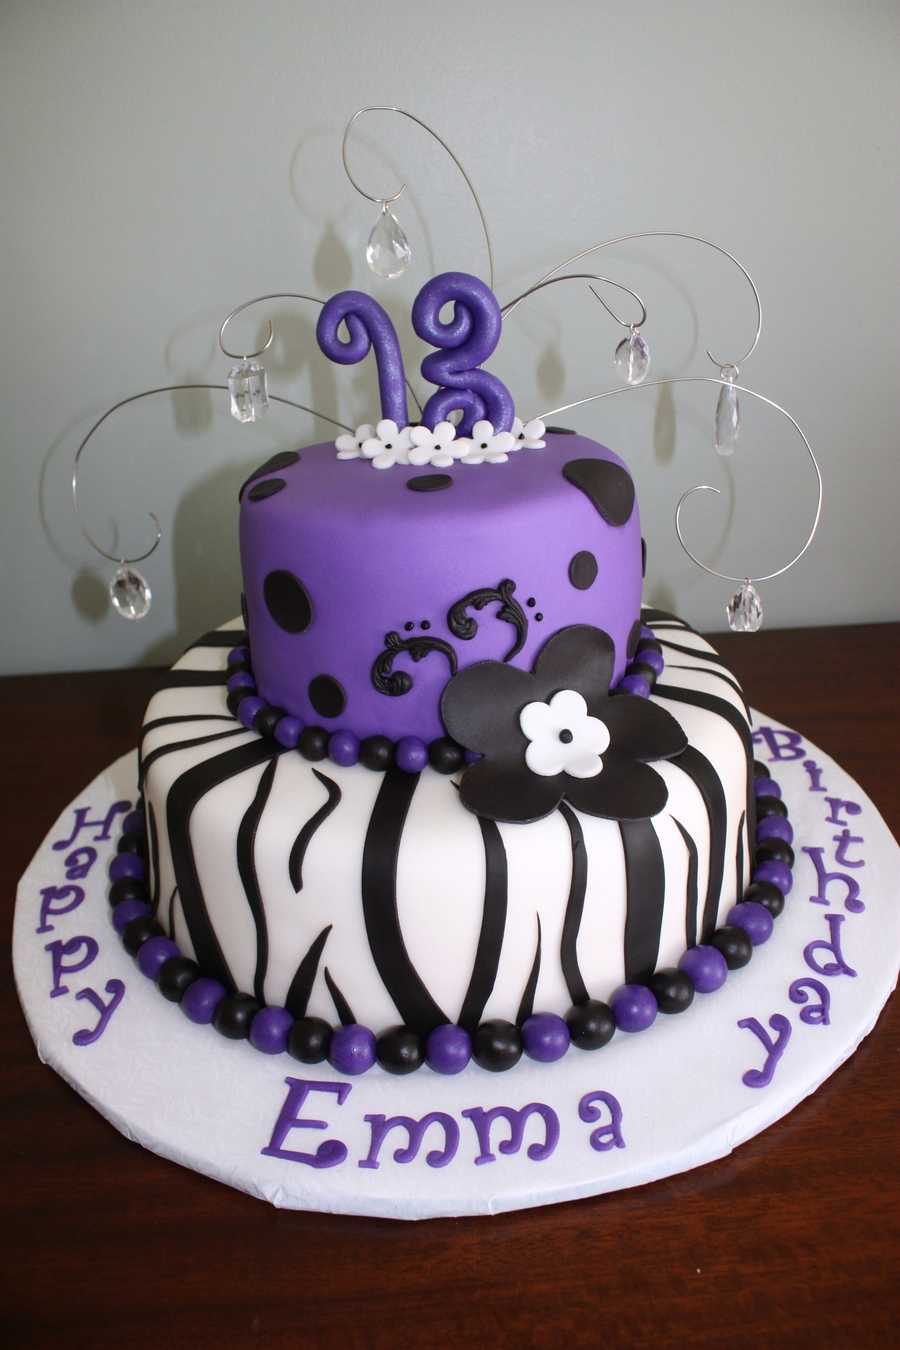 13th Birthday Cakecentral Com